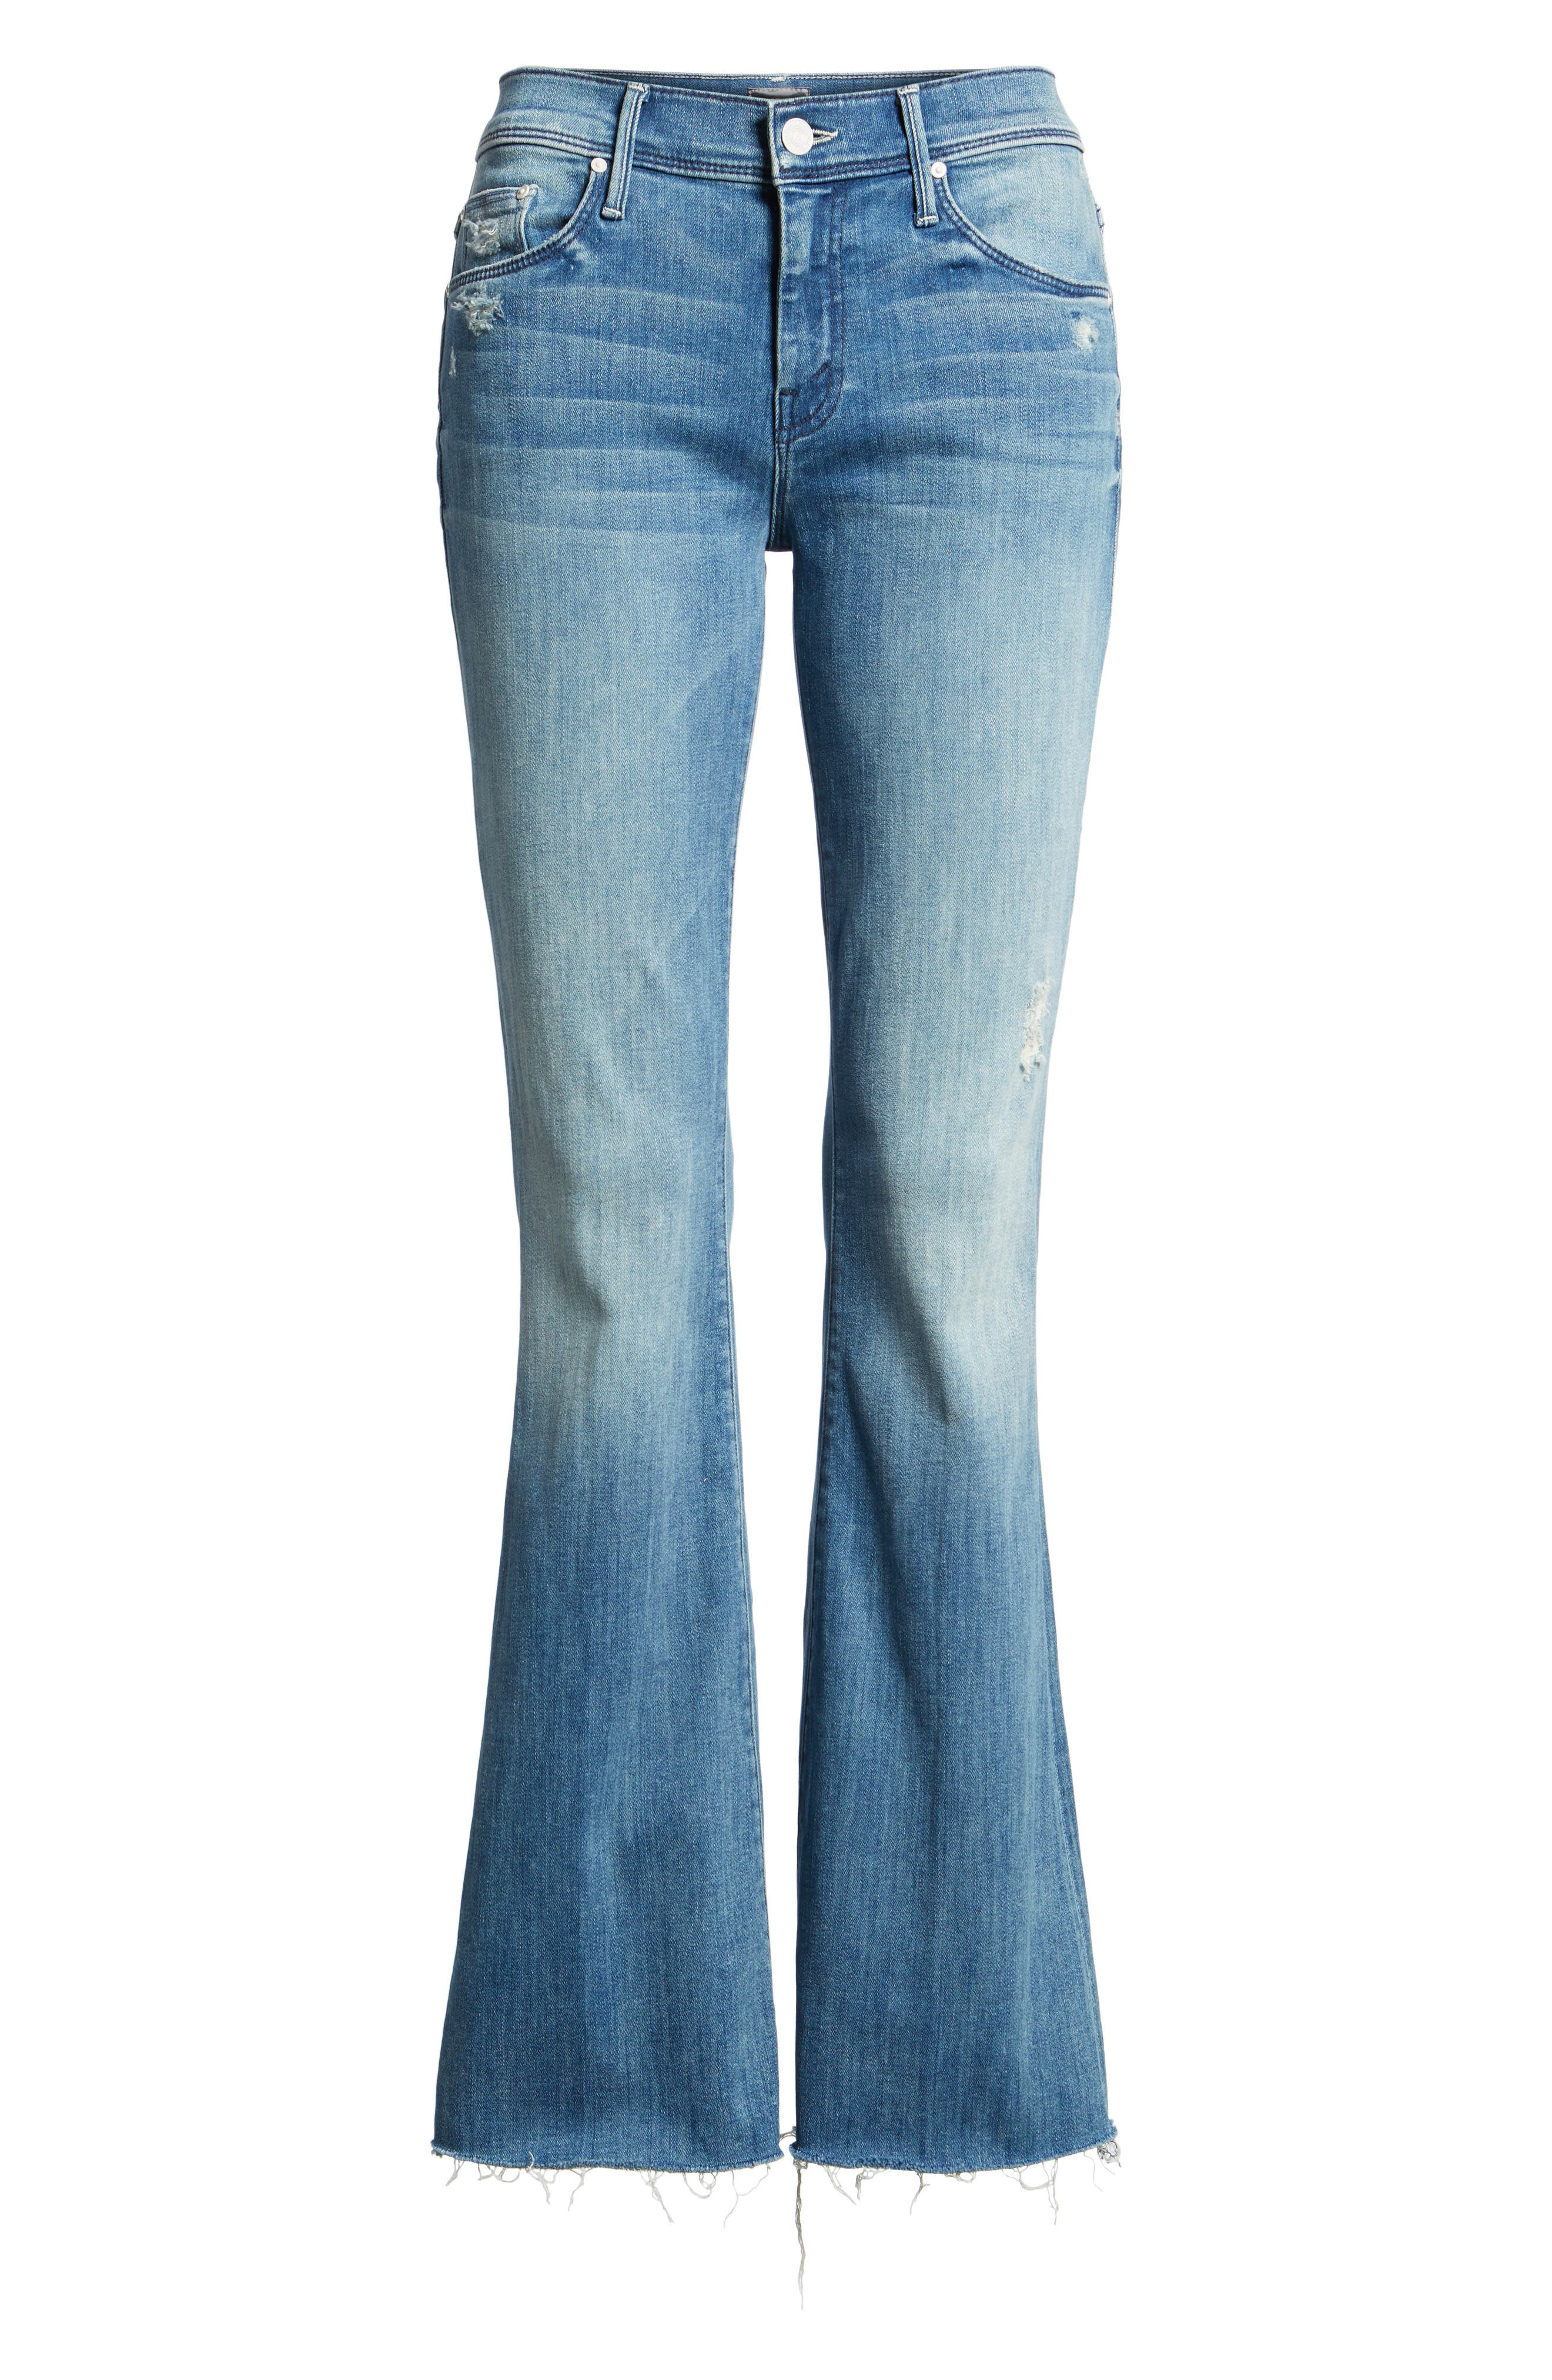 MOTHER Raw Hem Flare Jeans, Main, color, 420